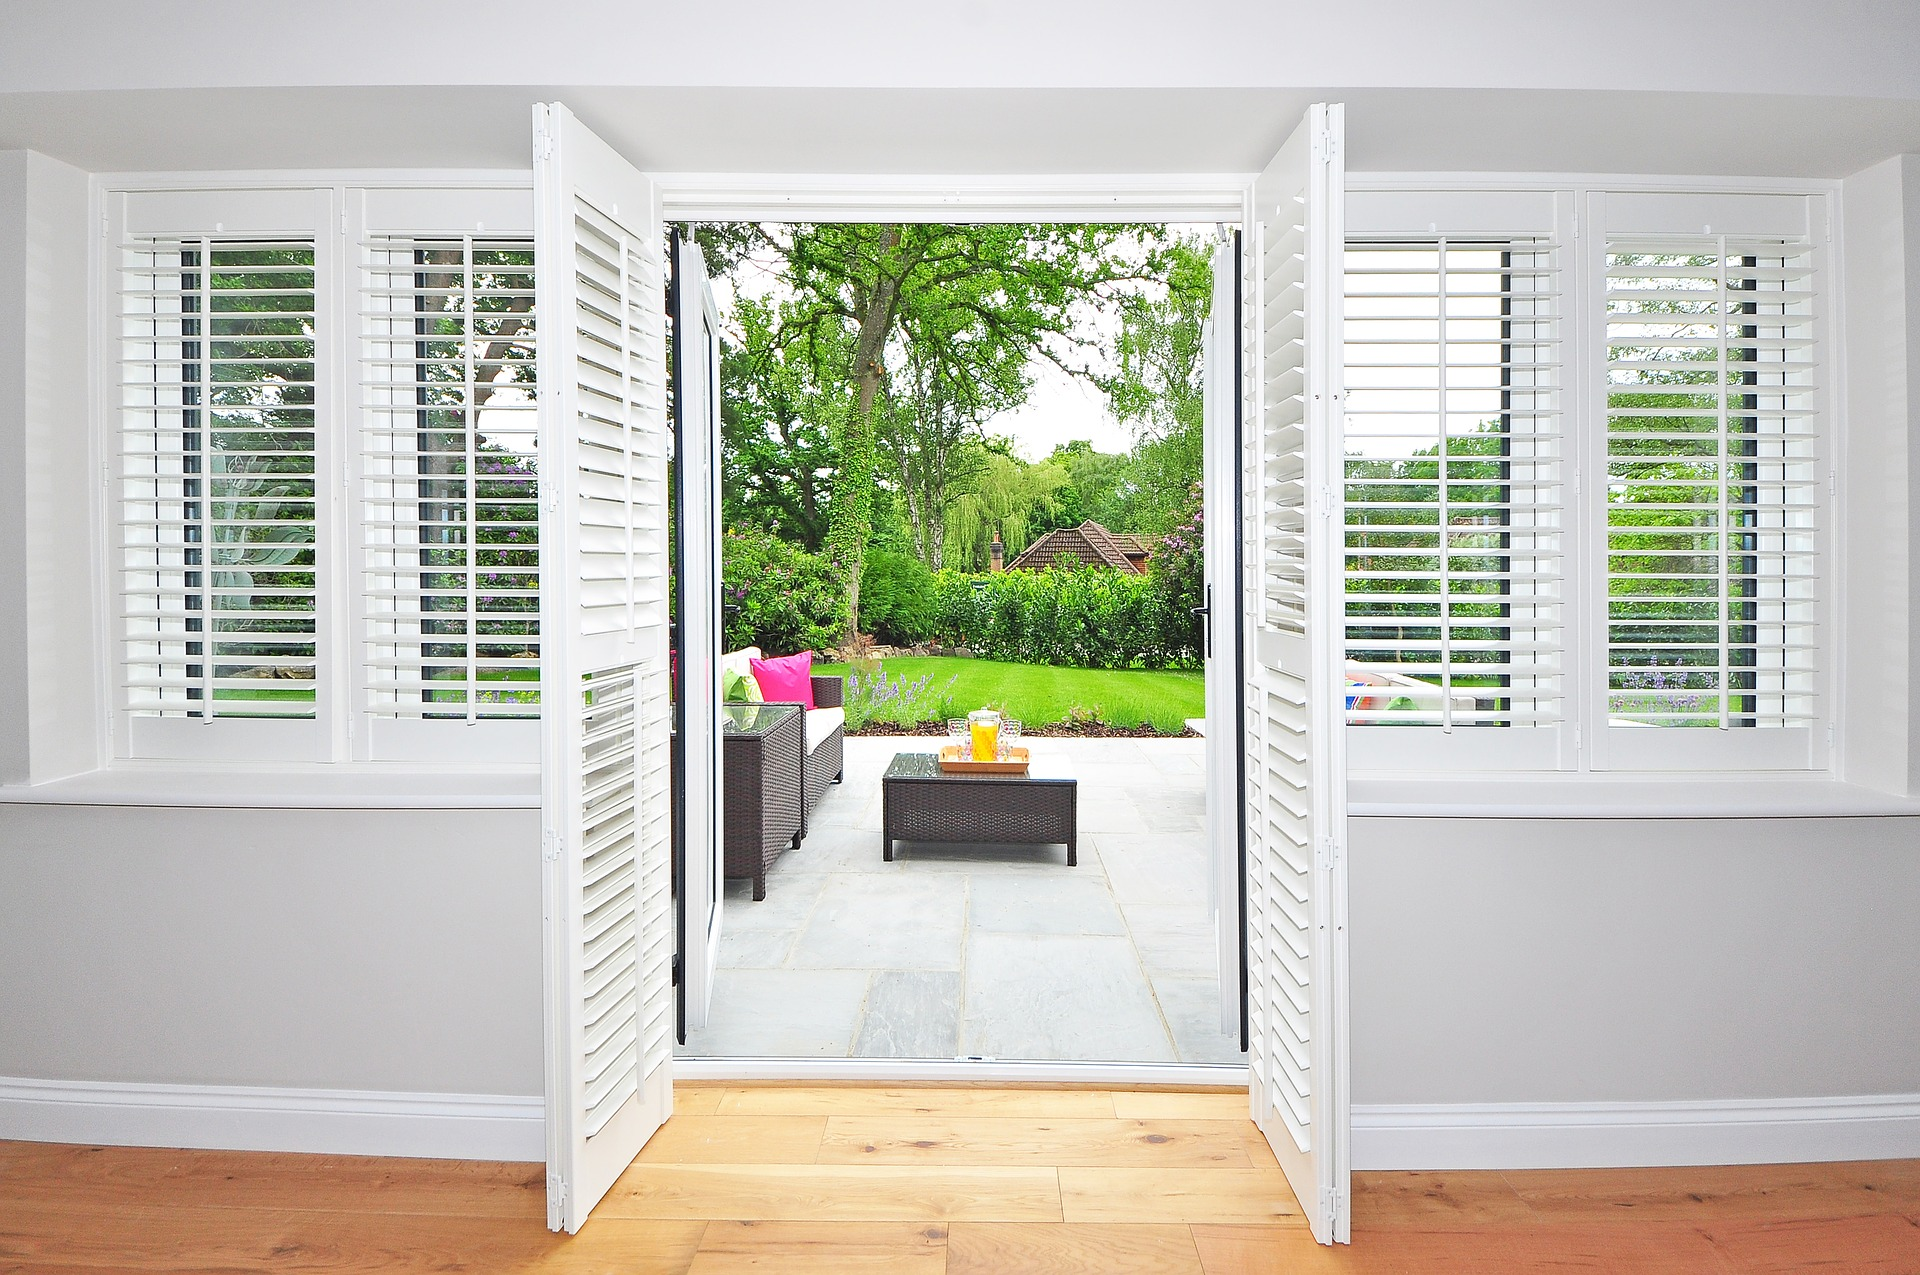 Sleek Design - Plantation shutters provide a smooth and flawless finishing touch.  A versatile design makes them a perfect choice for any space.  Whether you want the louvers open just a crack to let some light seep in, or you want to open the whole shutter, you can't go wrong with the flawless design